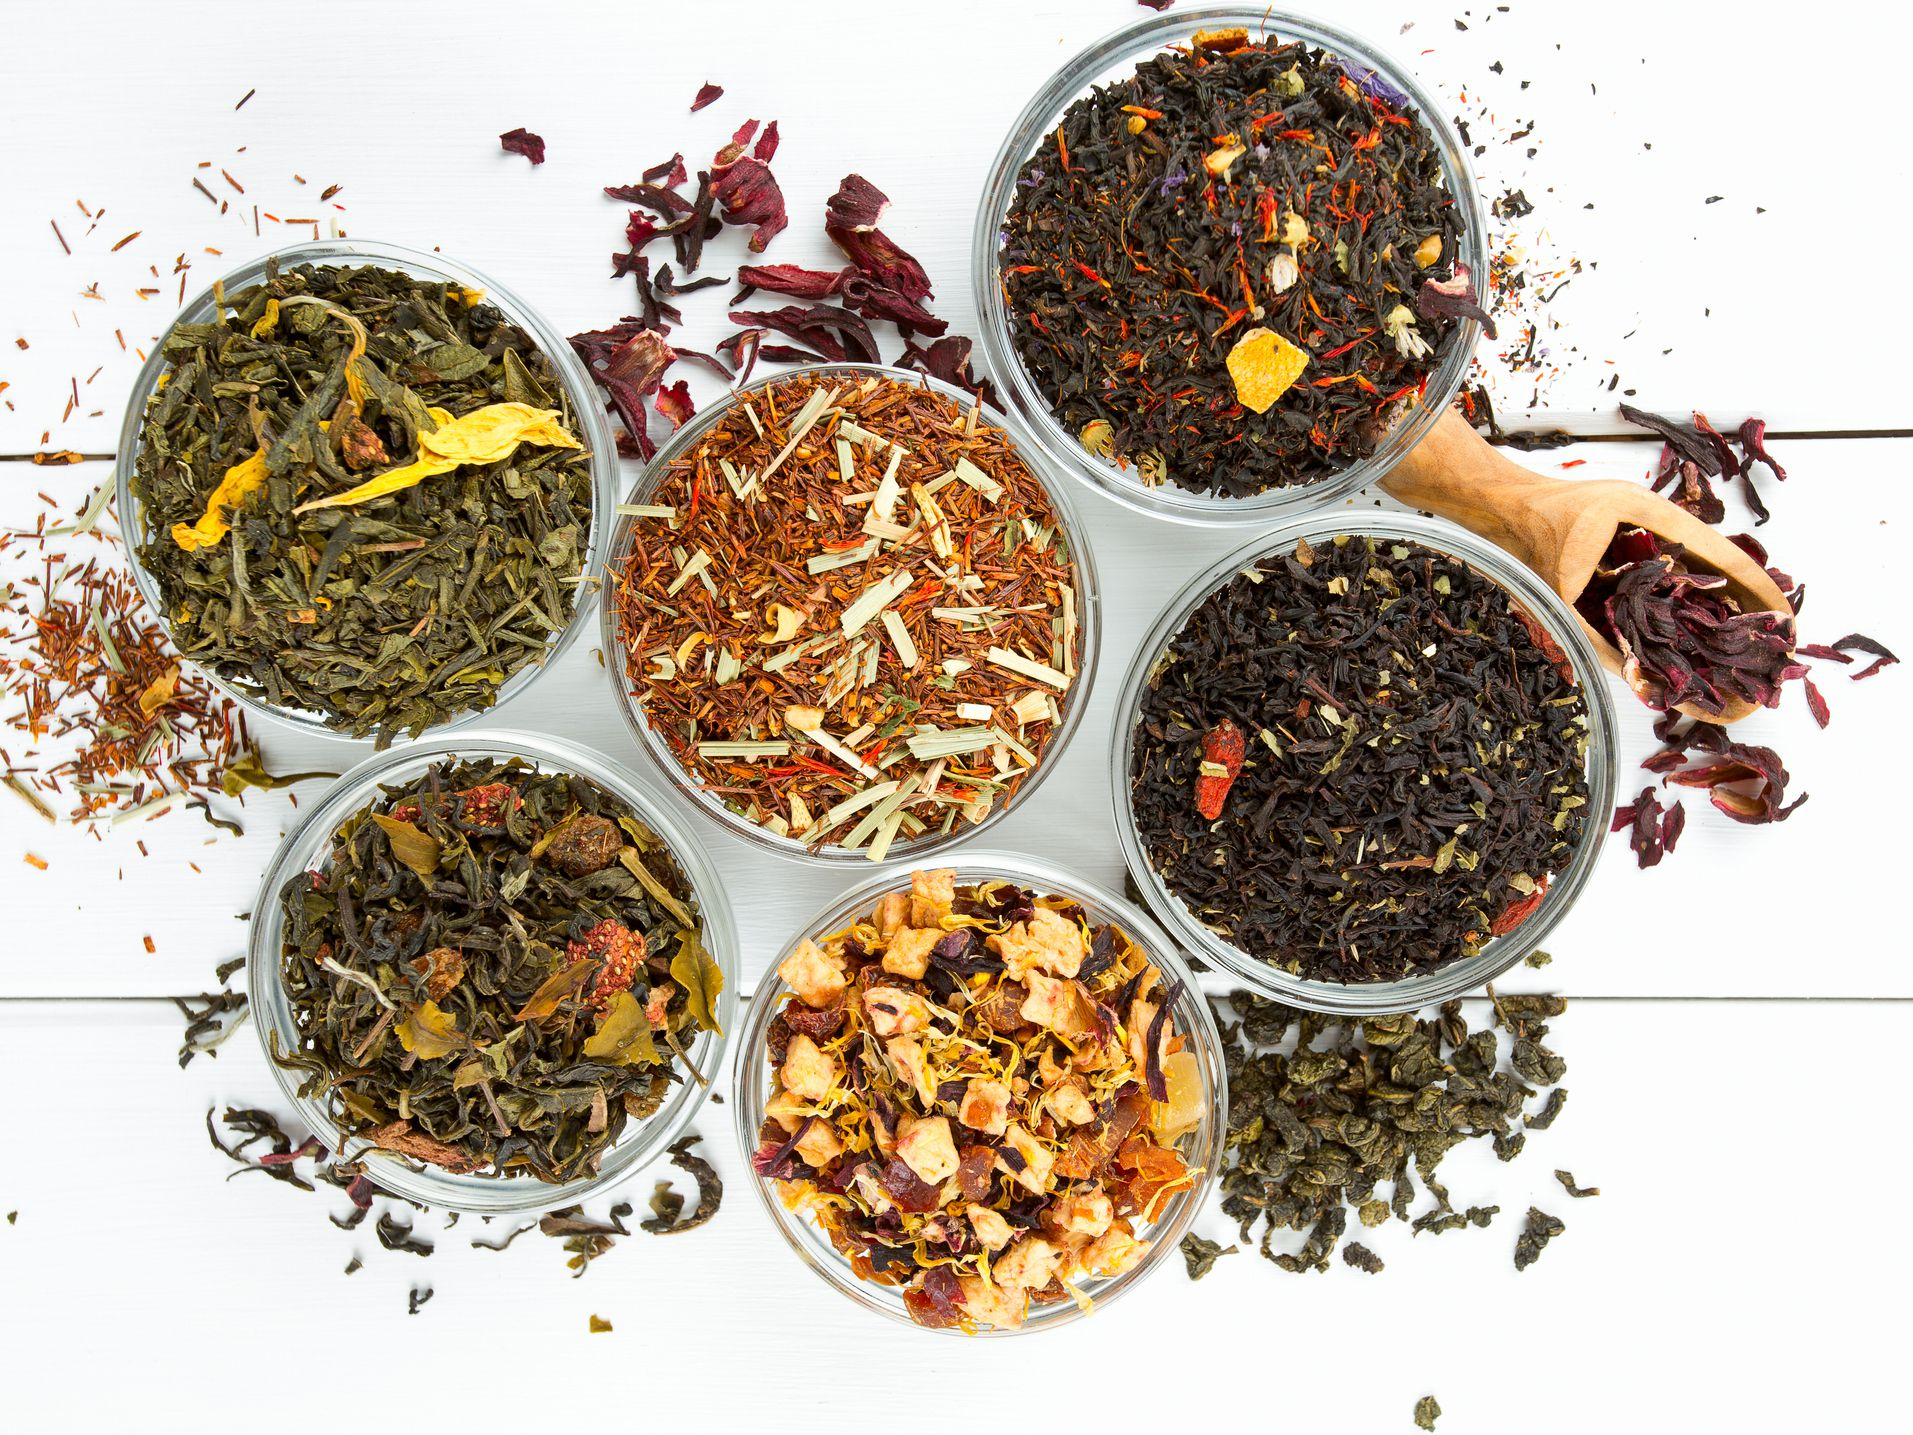 How To Make Tea From Herbs